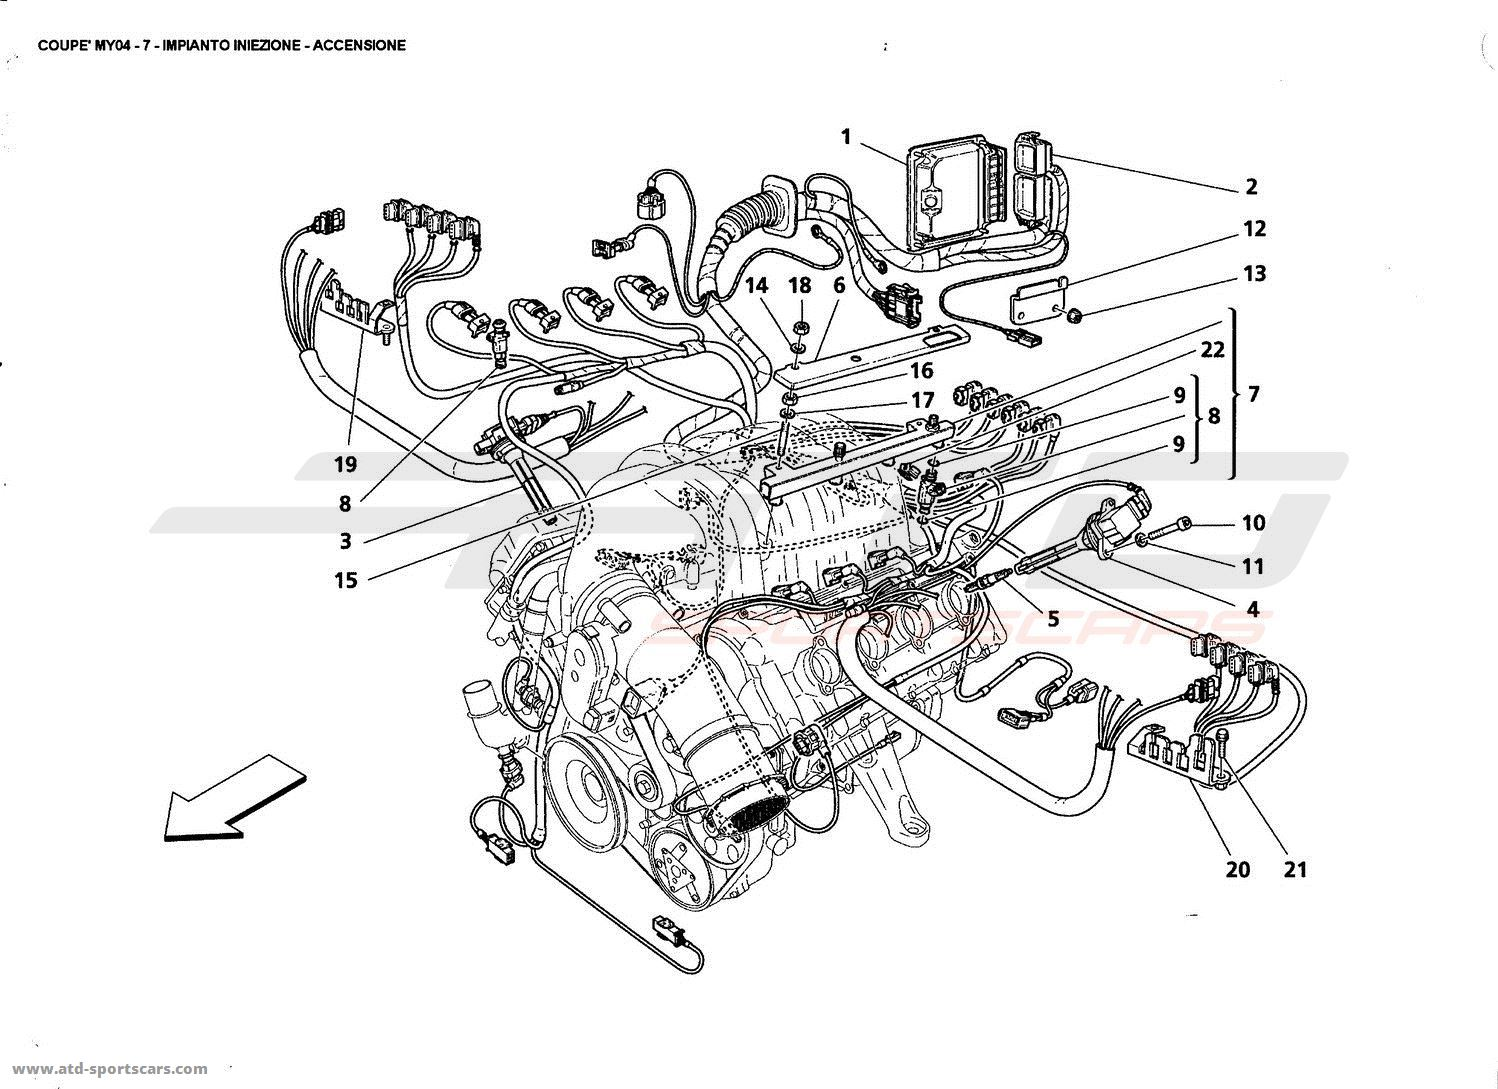 Mazda Mpv Ignition Diagram Html